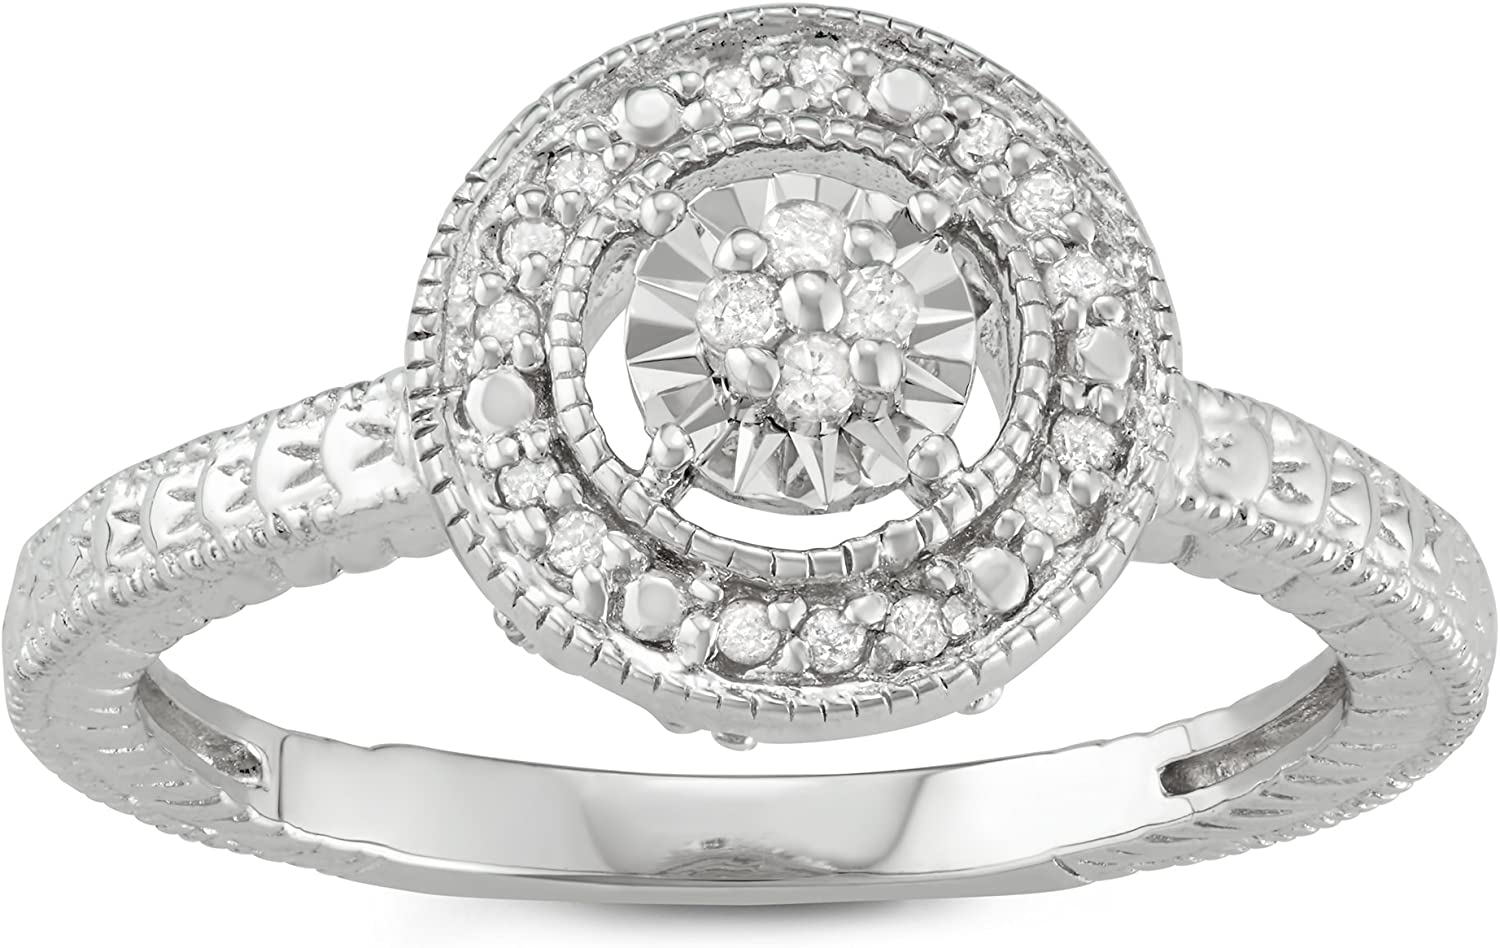 1/10 CTTW Sterling Silver White Diamond Solitaire Look Ring